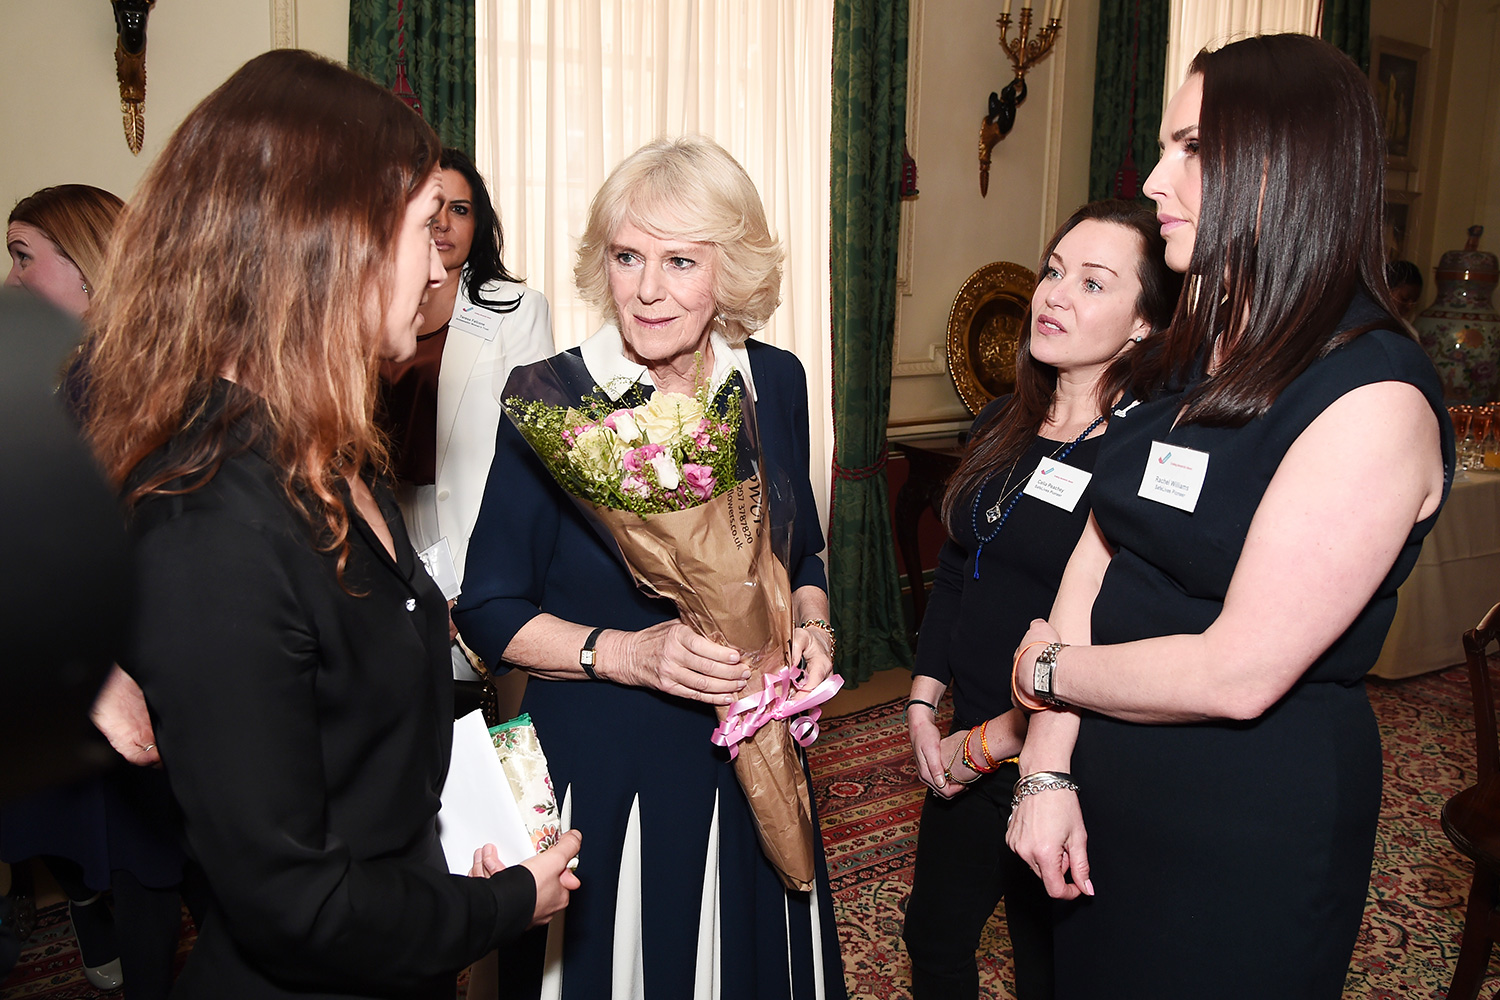 Camilla, Duchess of Cornwall (2nd L) is greeted by CEO of SafeLives Suzanne Jacob (L) and SafeLives Pioneers Celia Peachey and Rachel Williams during a reception to acknowledge the 15th anniversary of domestic abuse charity SafeLives at Clarence House on February 12, 2020 in London, England